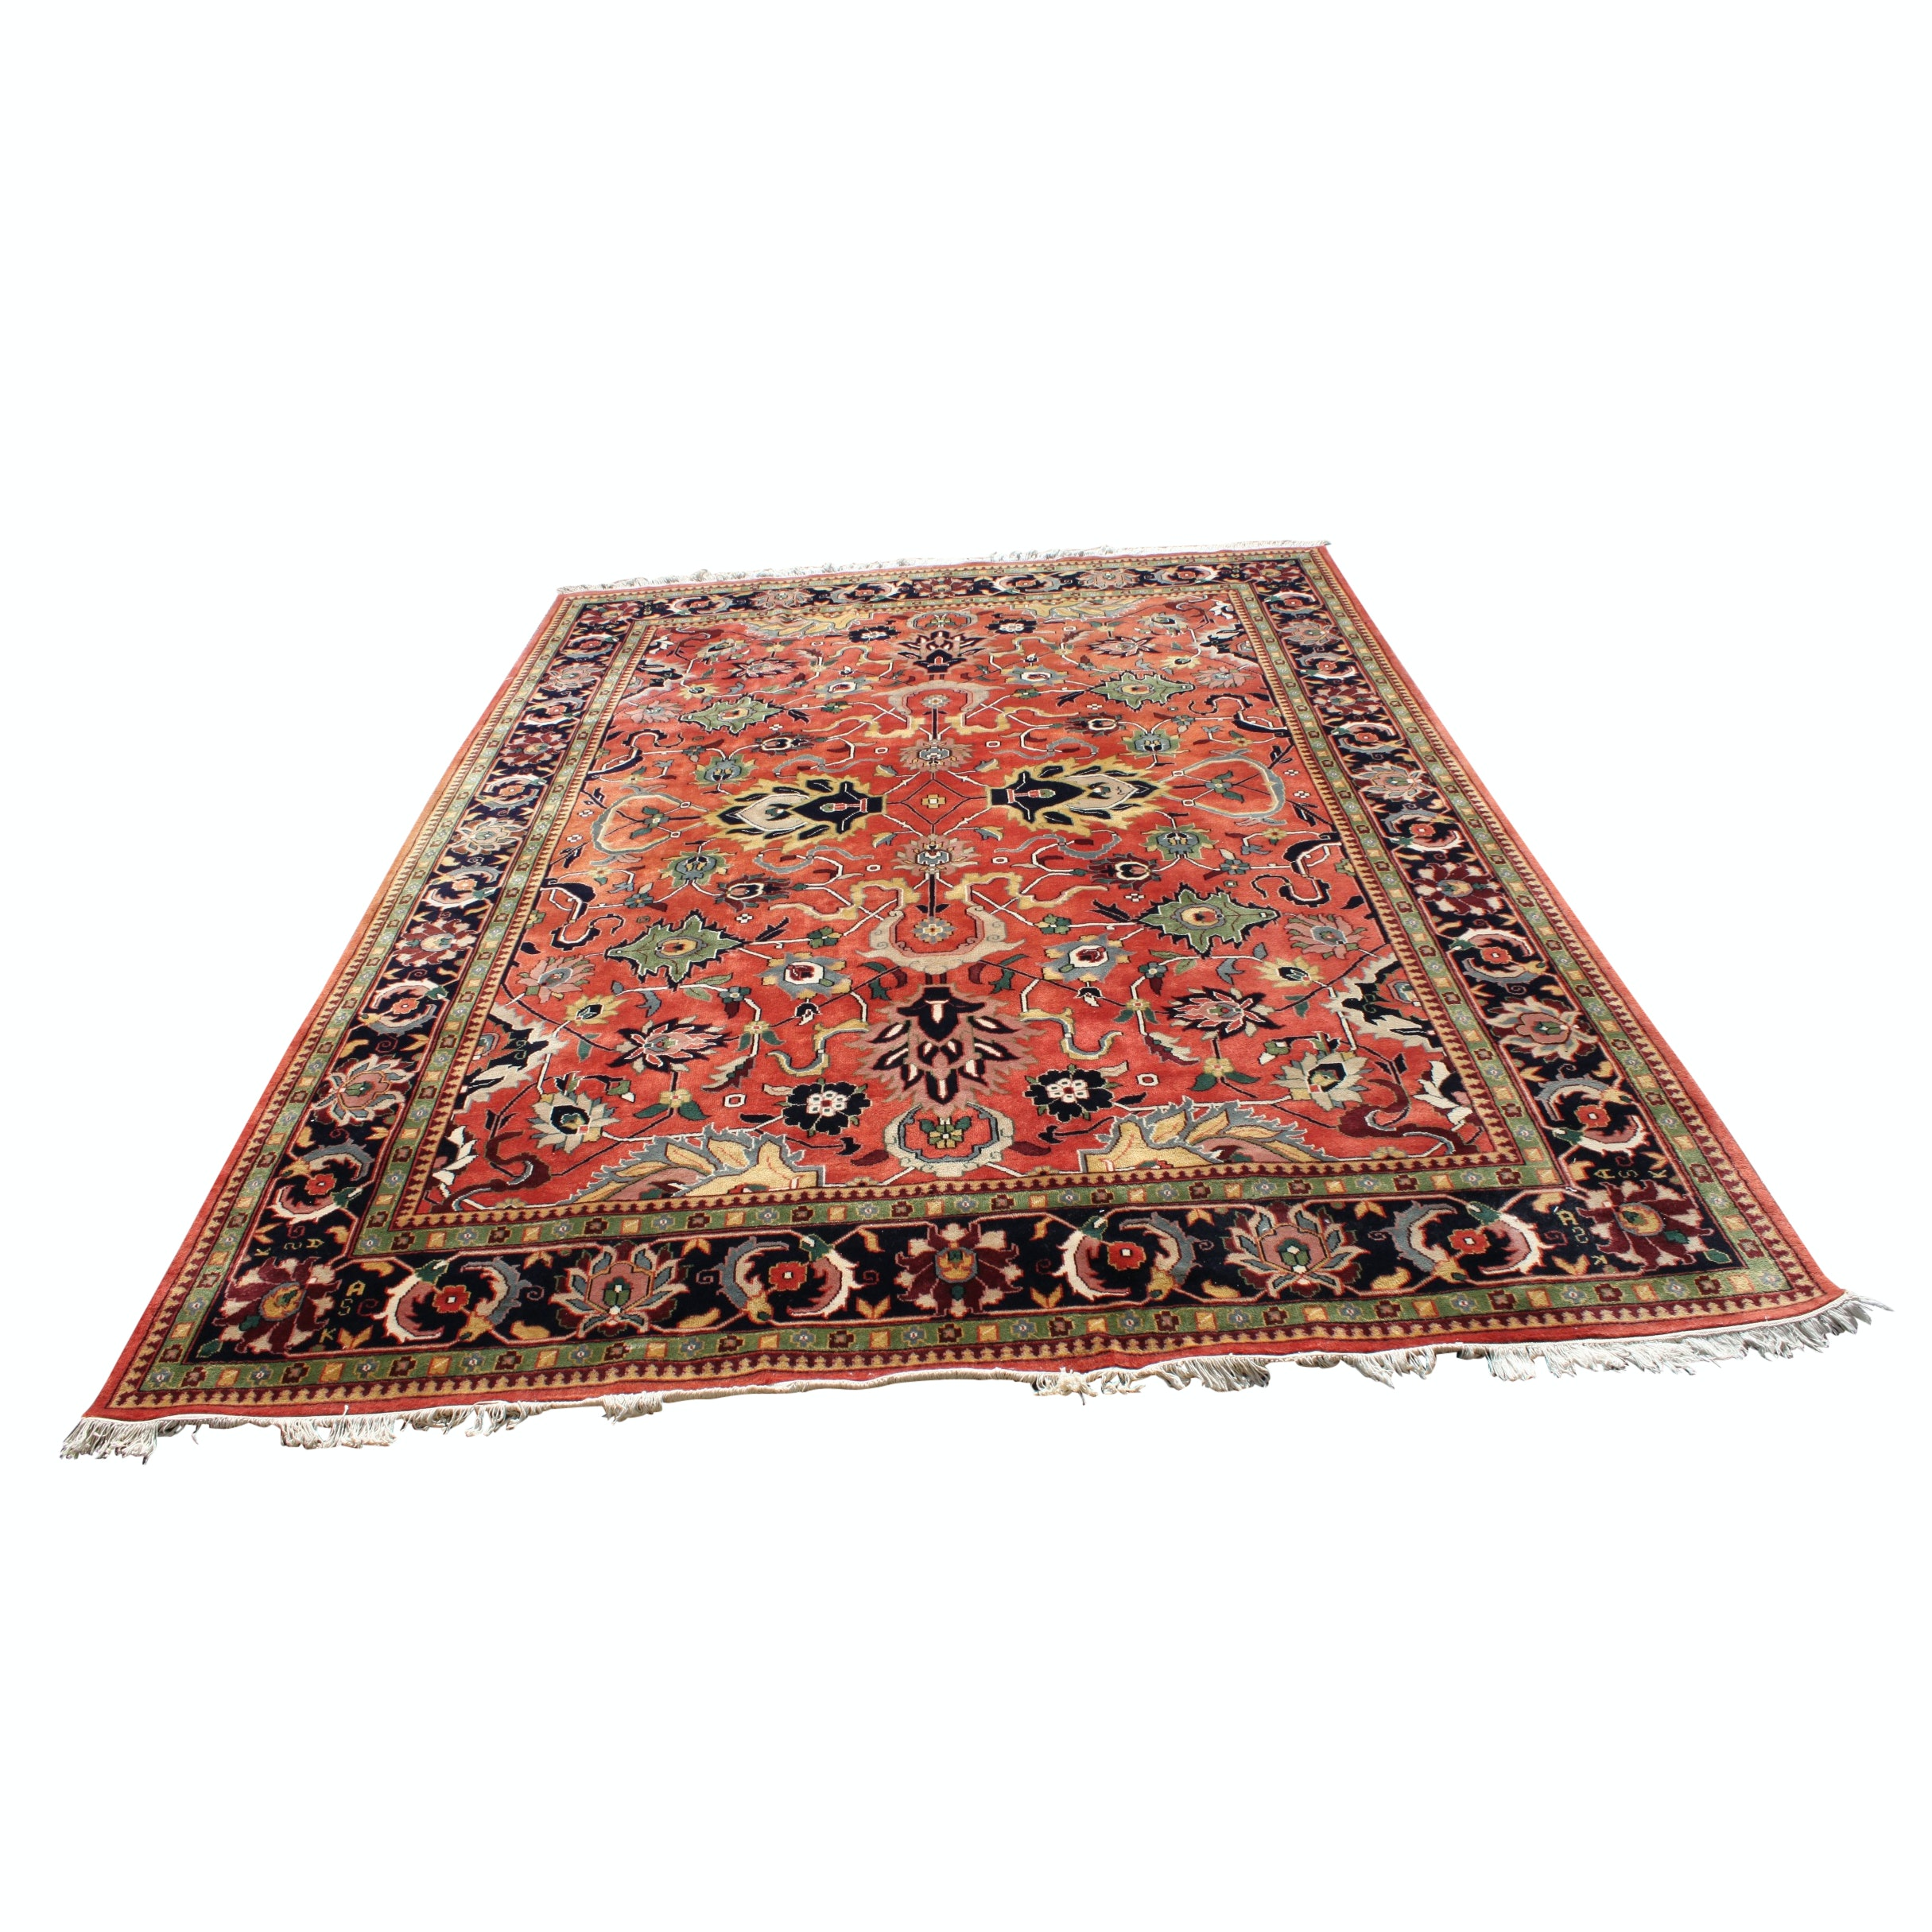 Power Loomed Inscribed Mashhad-Style Wool Room Size Rug